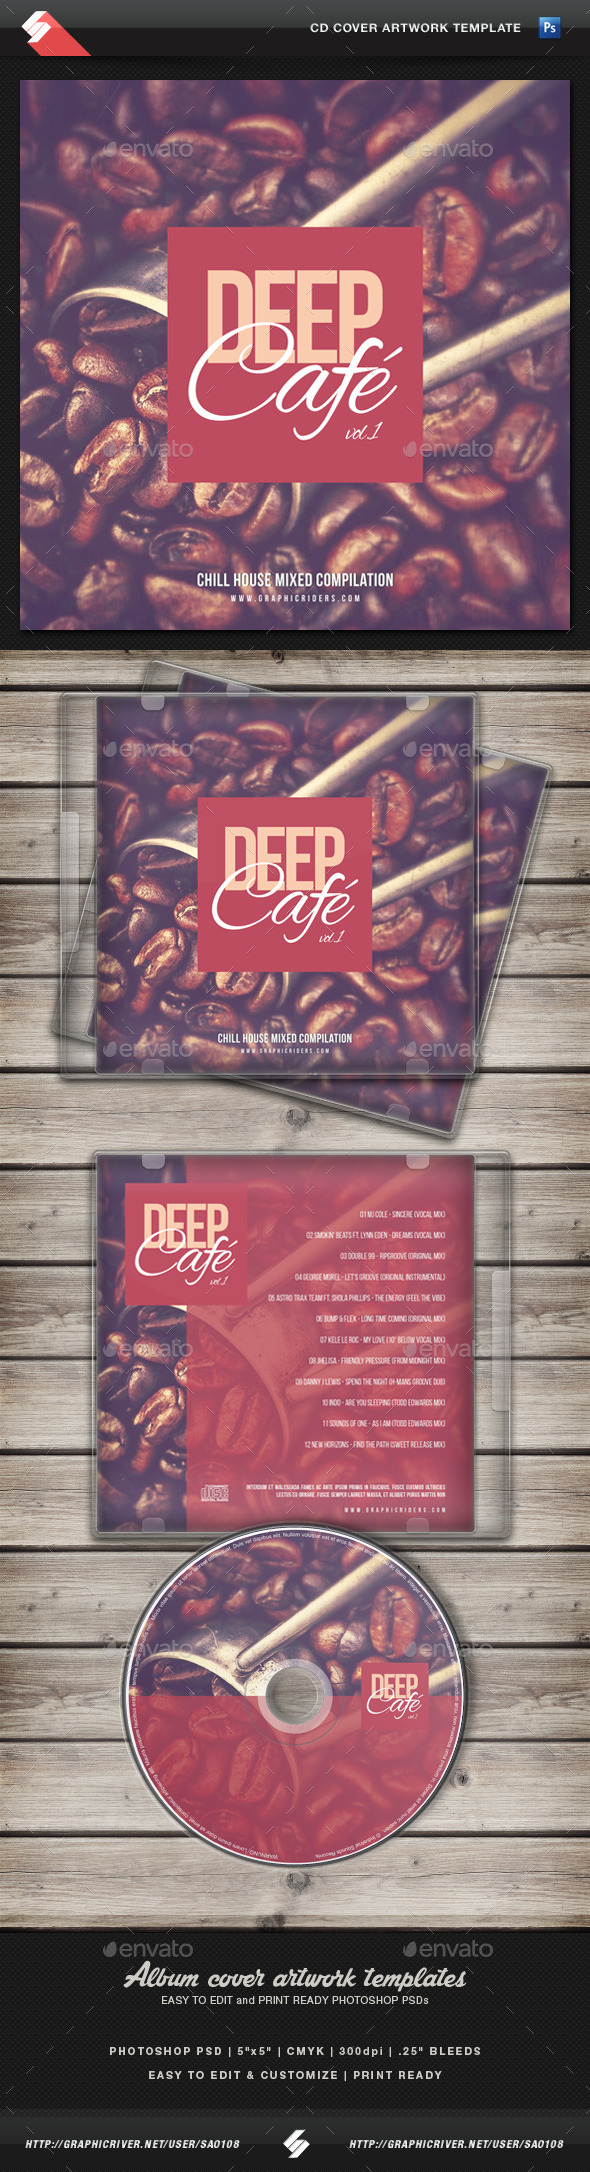 Deep Cafe vol1 CD Cover Artwork Template